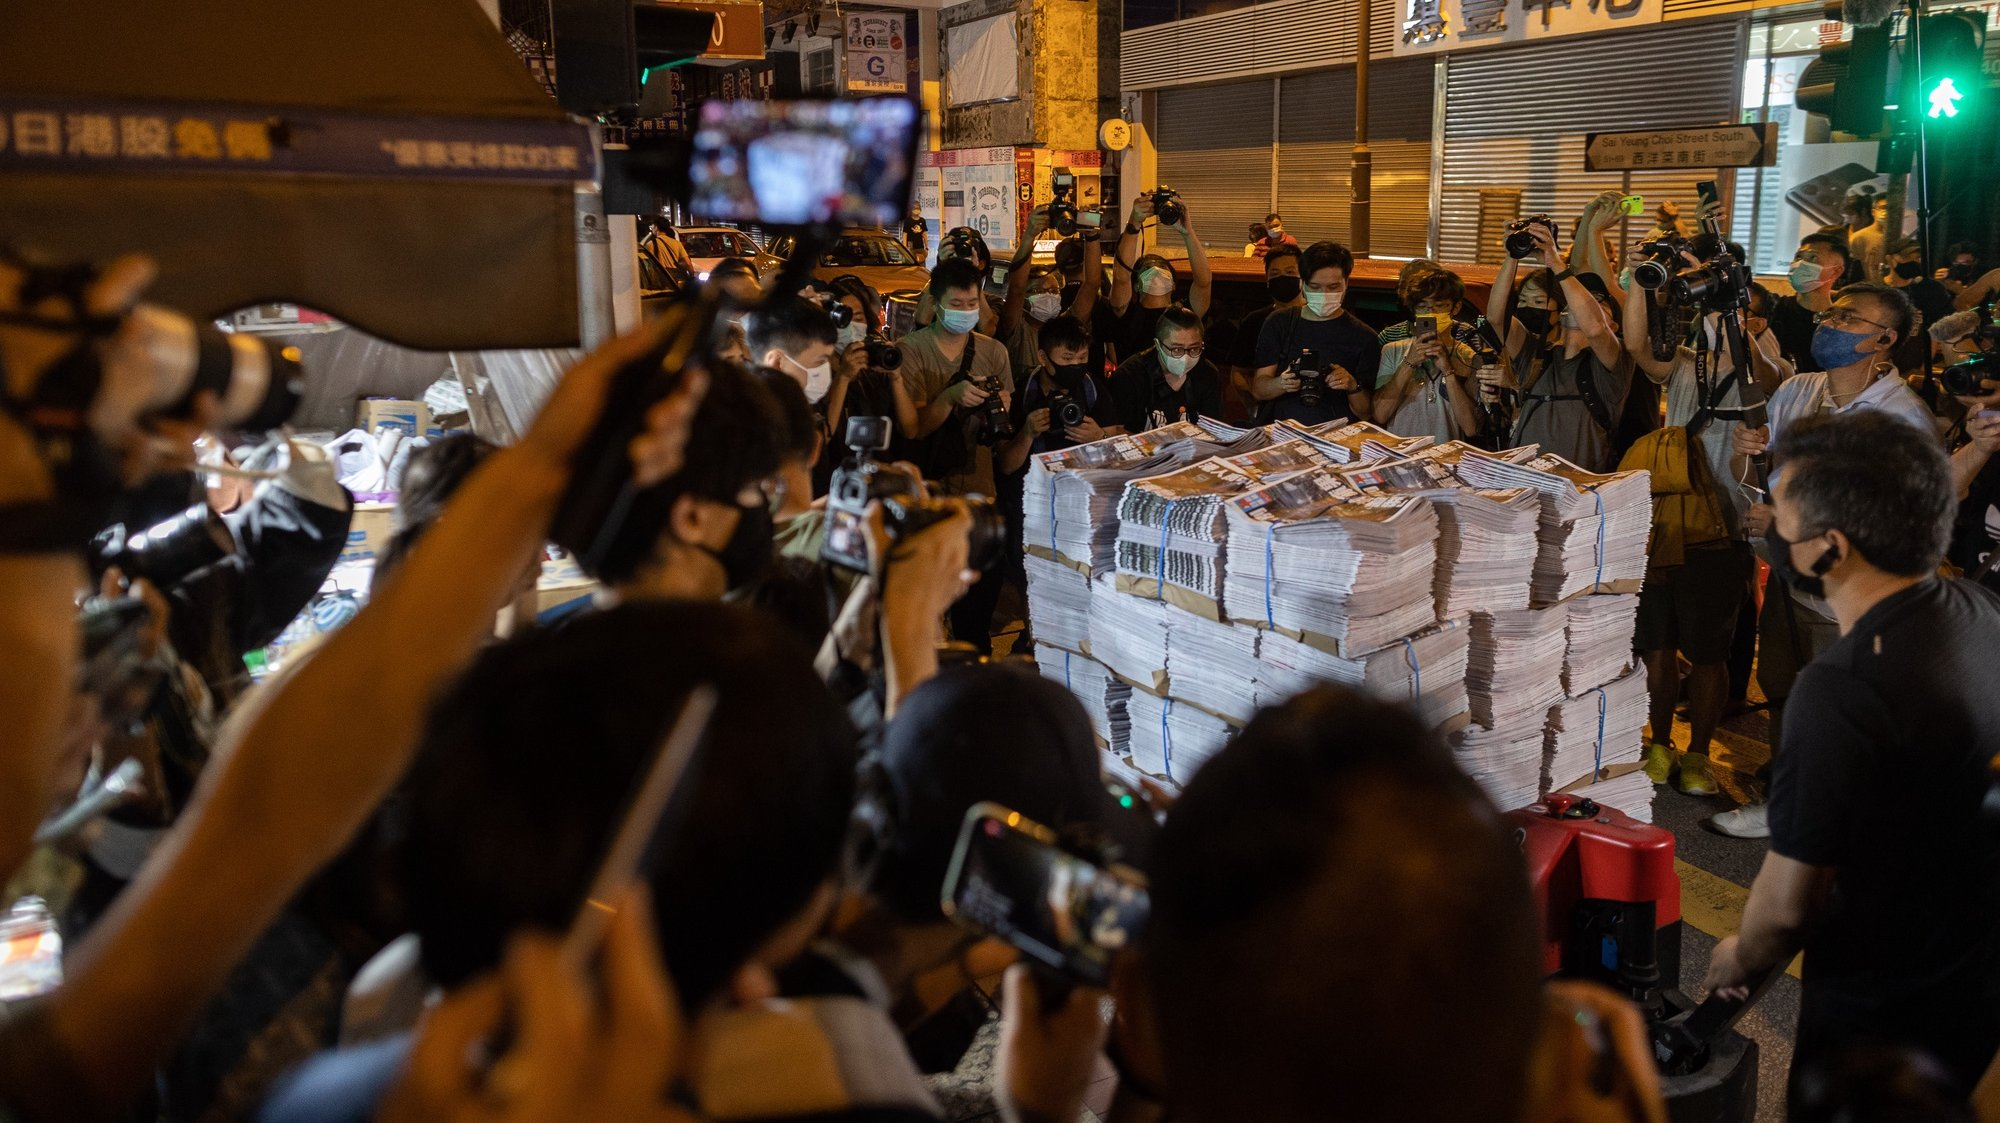 epa09296913 Supporters and members of the media surround a palette of Apple Daily's final issue being delivered to a newsstand in the early hours to buy Apple Daily's final issue in Mongkok district, Hong Kong, China, 24 June 2021. The last edition of Apple Daily rolled off the presses three days earlier than expected, after management took into consideration the safety of its staff and manpower concerns.  EPA/JEROME FAVRE